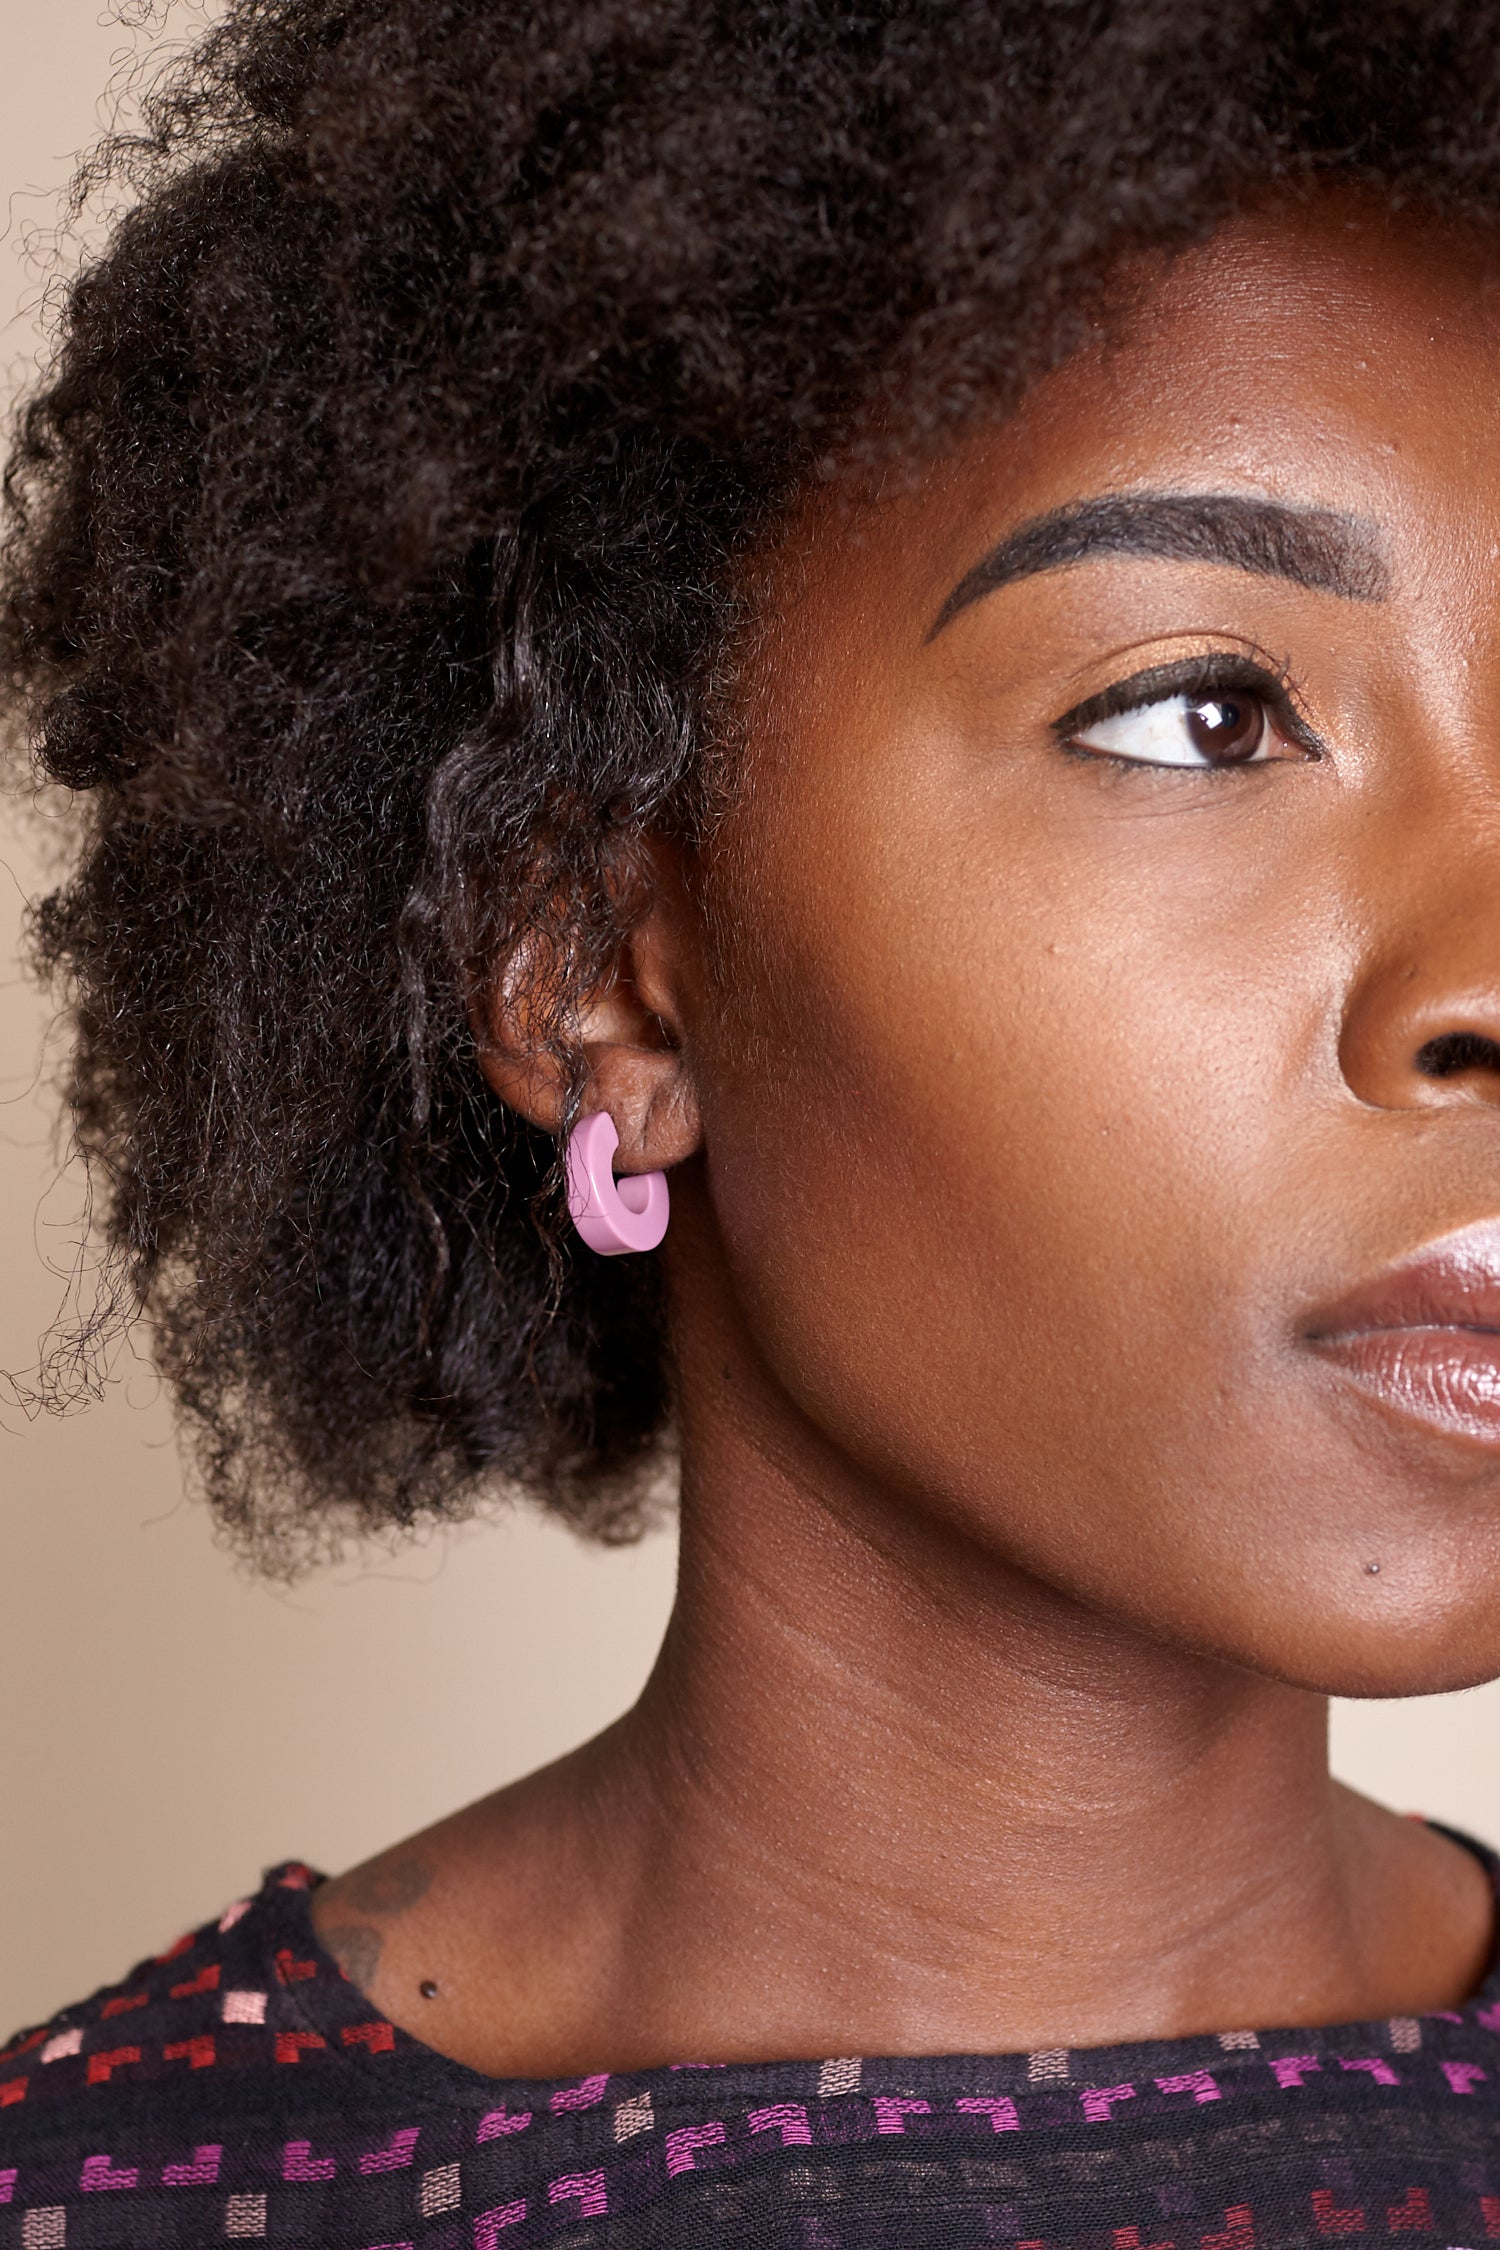 Cuba Earrings in Pink